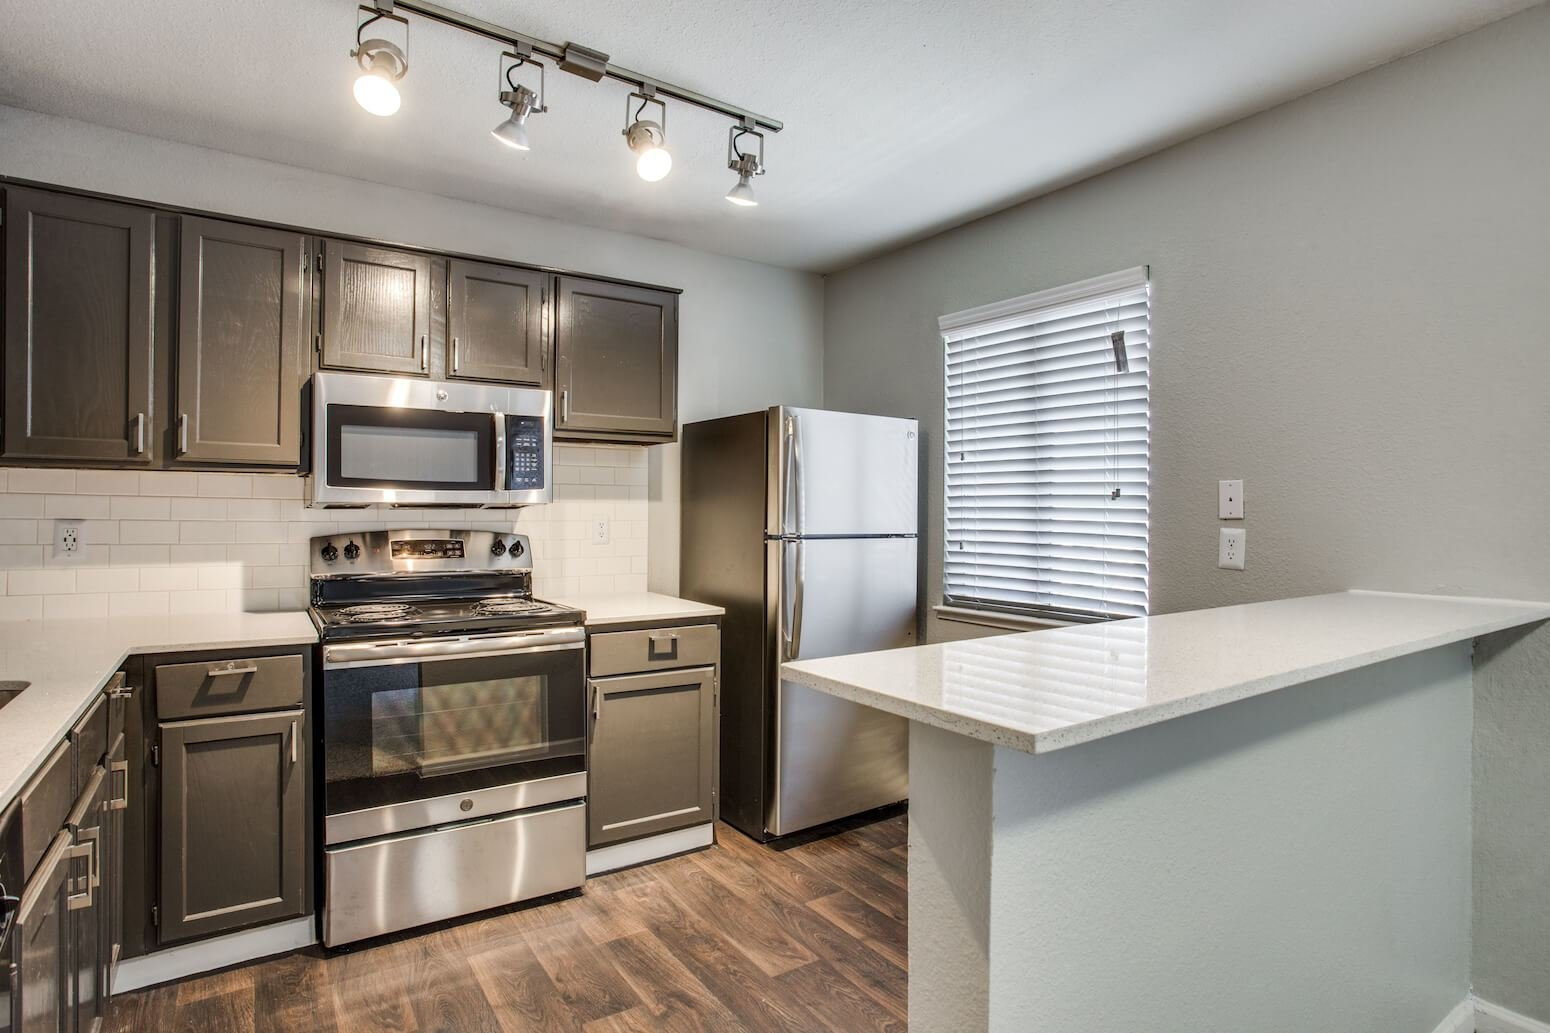 Best The Mark At 2600 1 To 3 Br Apartments For Rent In Arlington Tx With Pictures